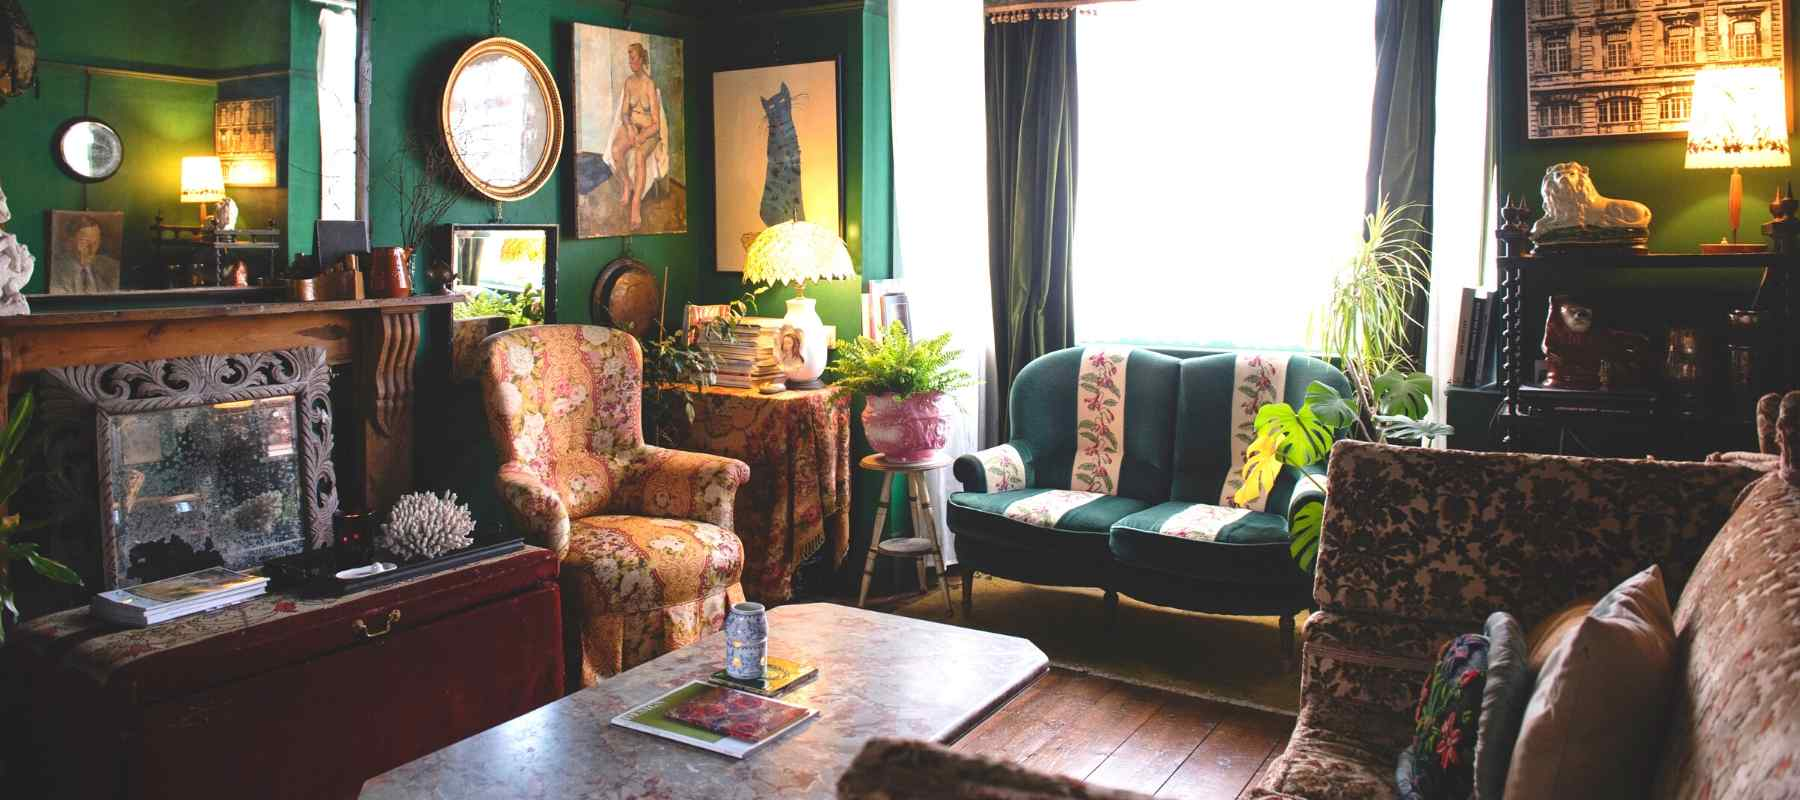 Green lounge decorated with vintage wooden furniture